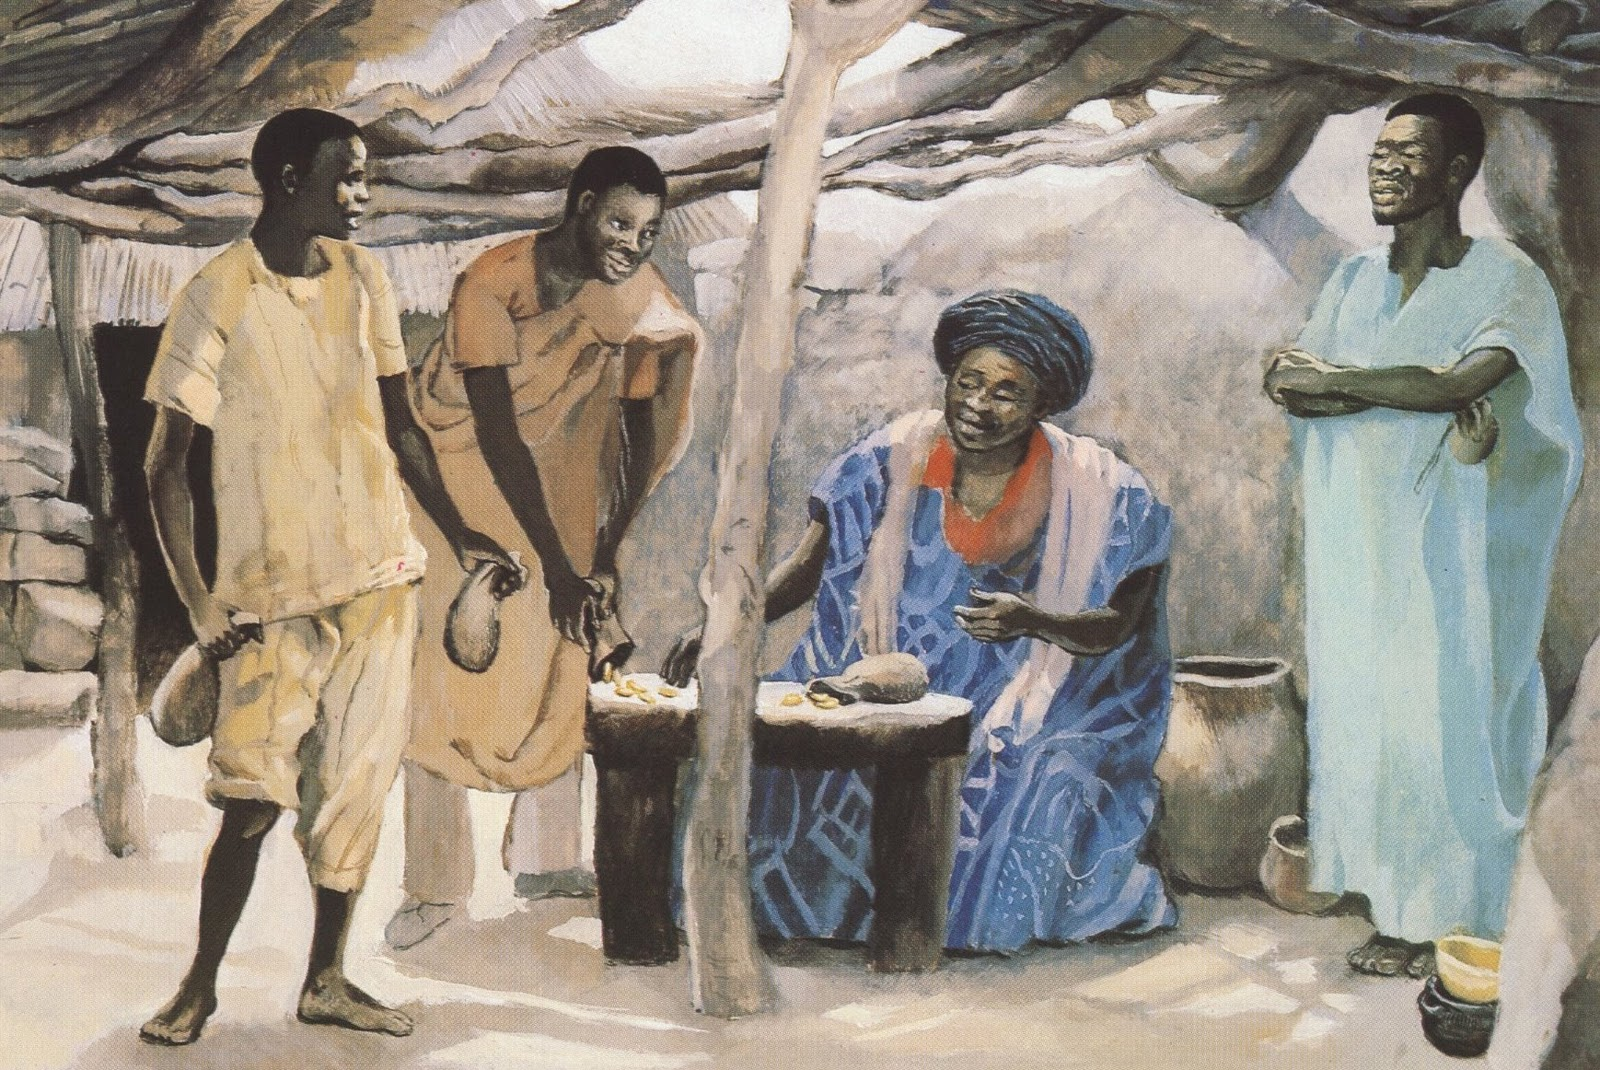 """the parable of the three servants 20:9-19 the parable of the evil tenants of the vineyard luke 20:9-19 """"he went on to tell the people this parable: a man planted a vineyard, rented it to some farmers and went away for a long time at harvest time he sent a servant to the tenants so they would give him some of the fruit of the vineyard."""